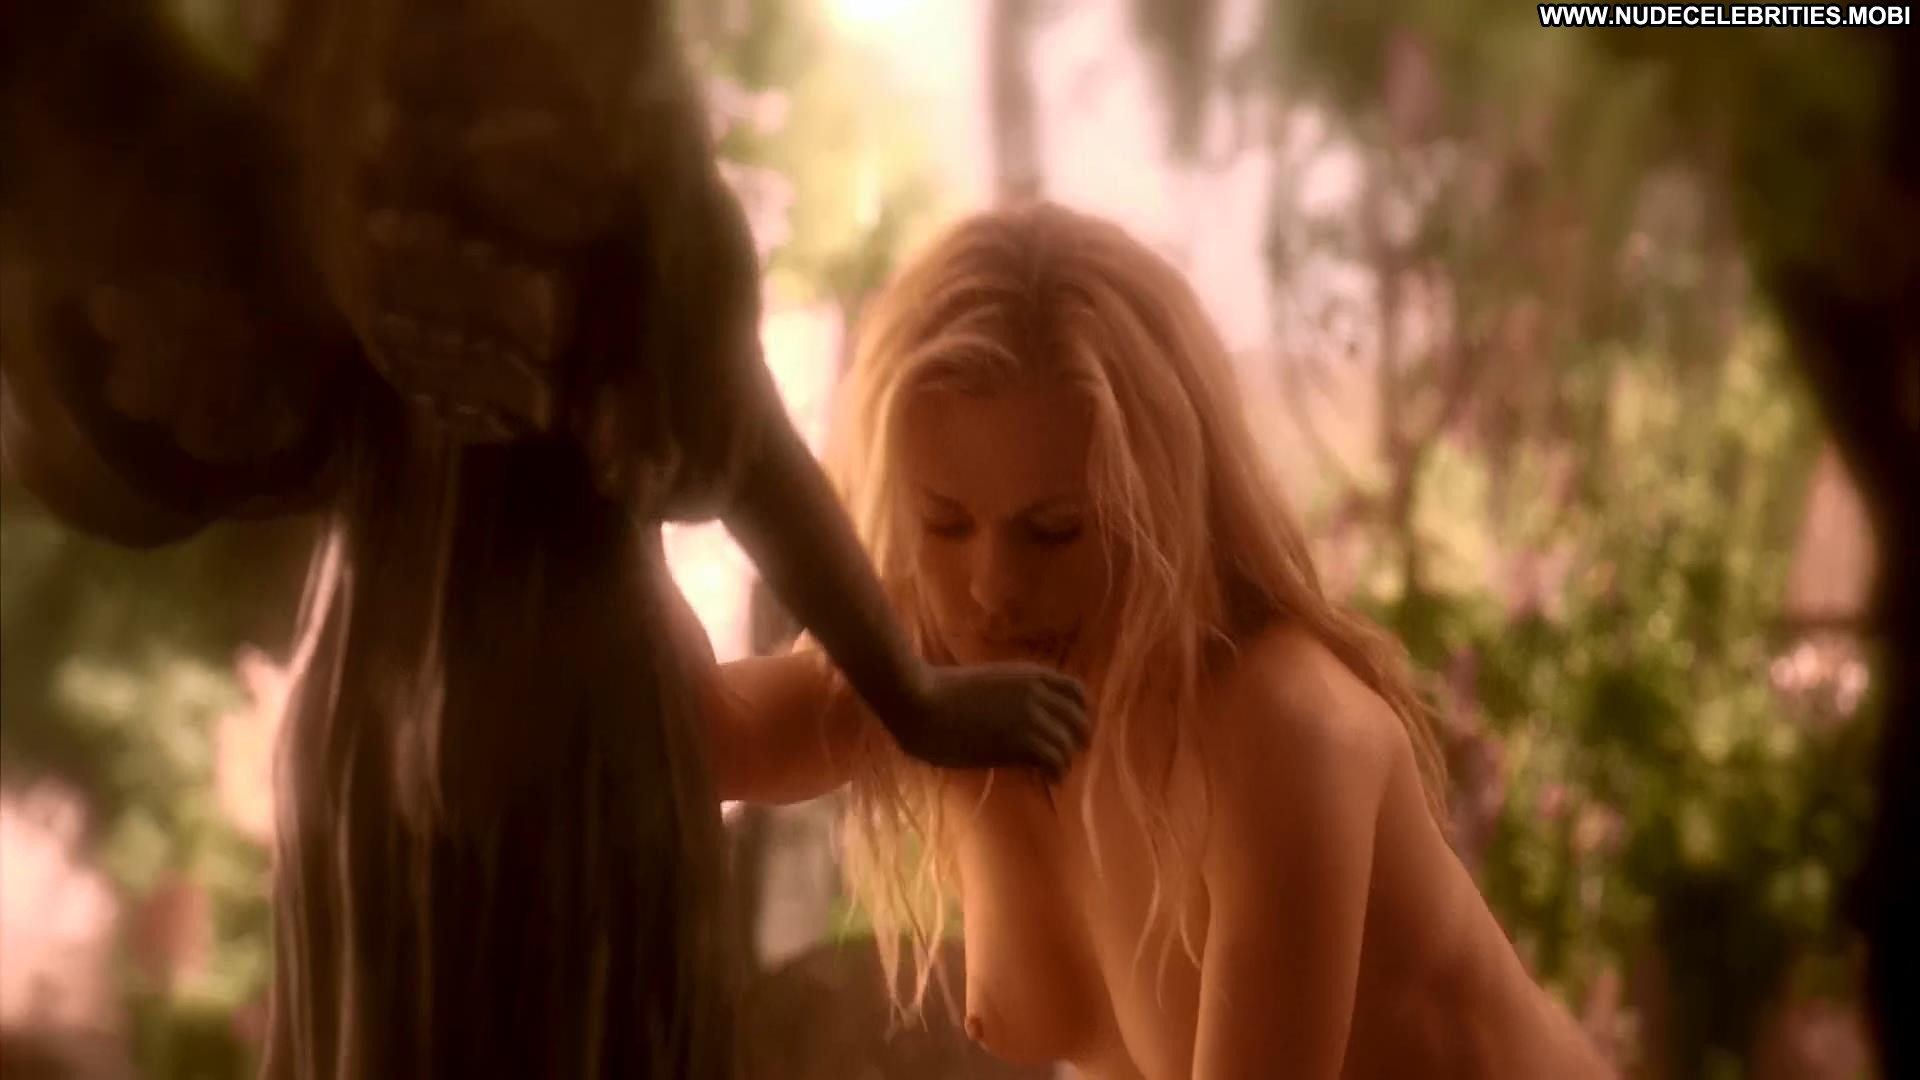 Anna paquin true blood nude scene #3